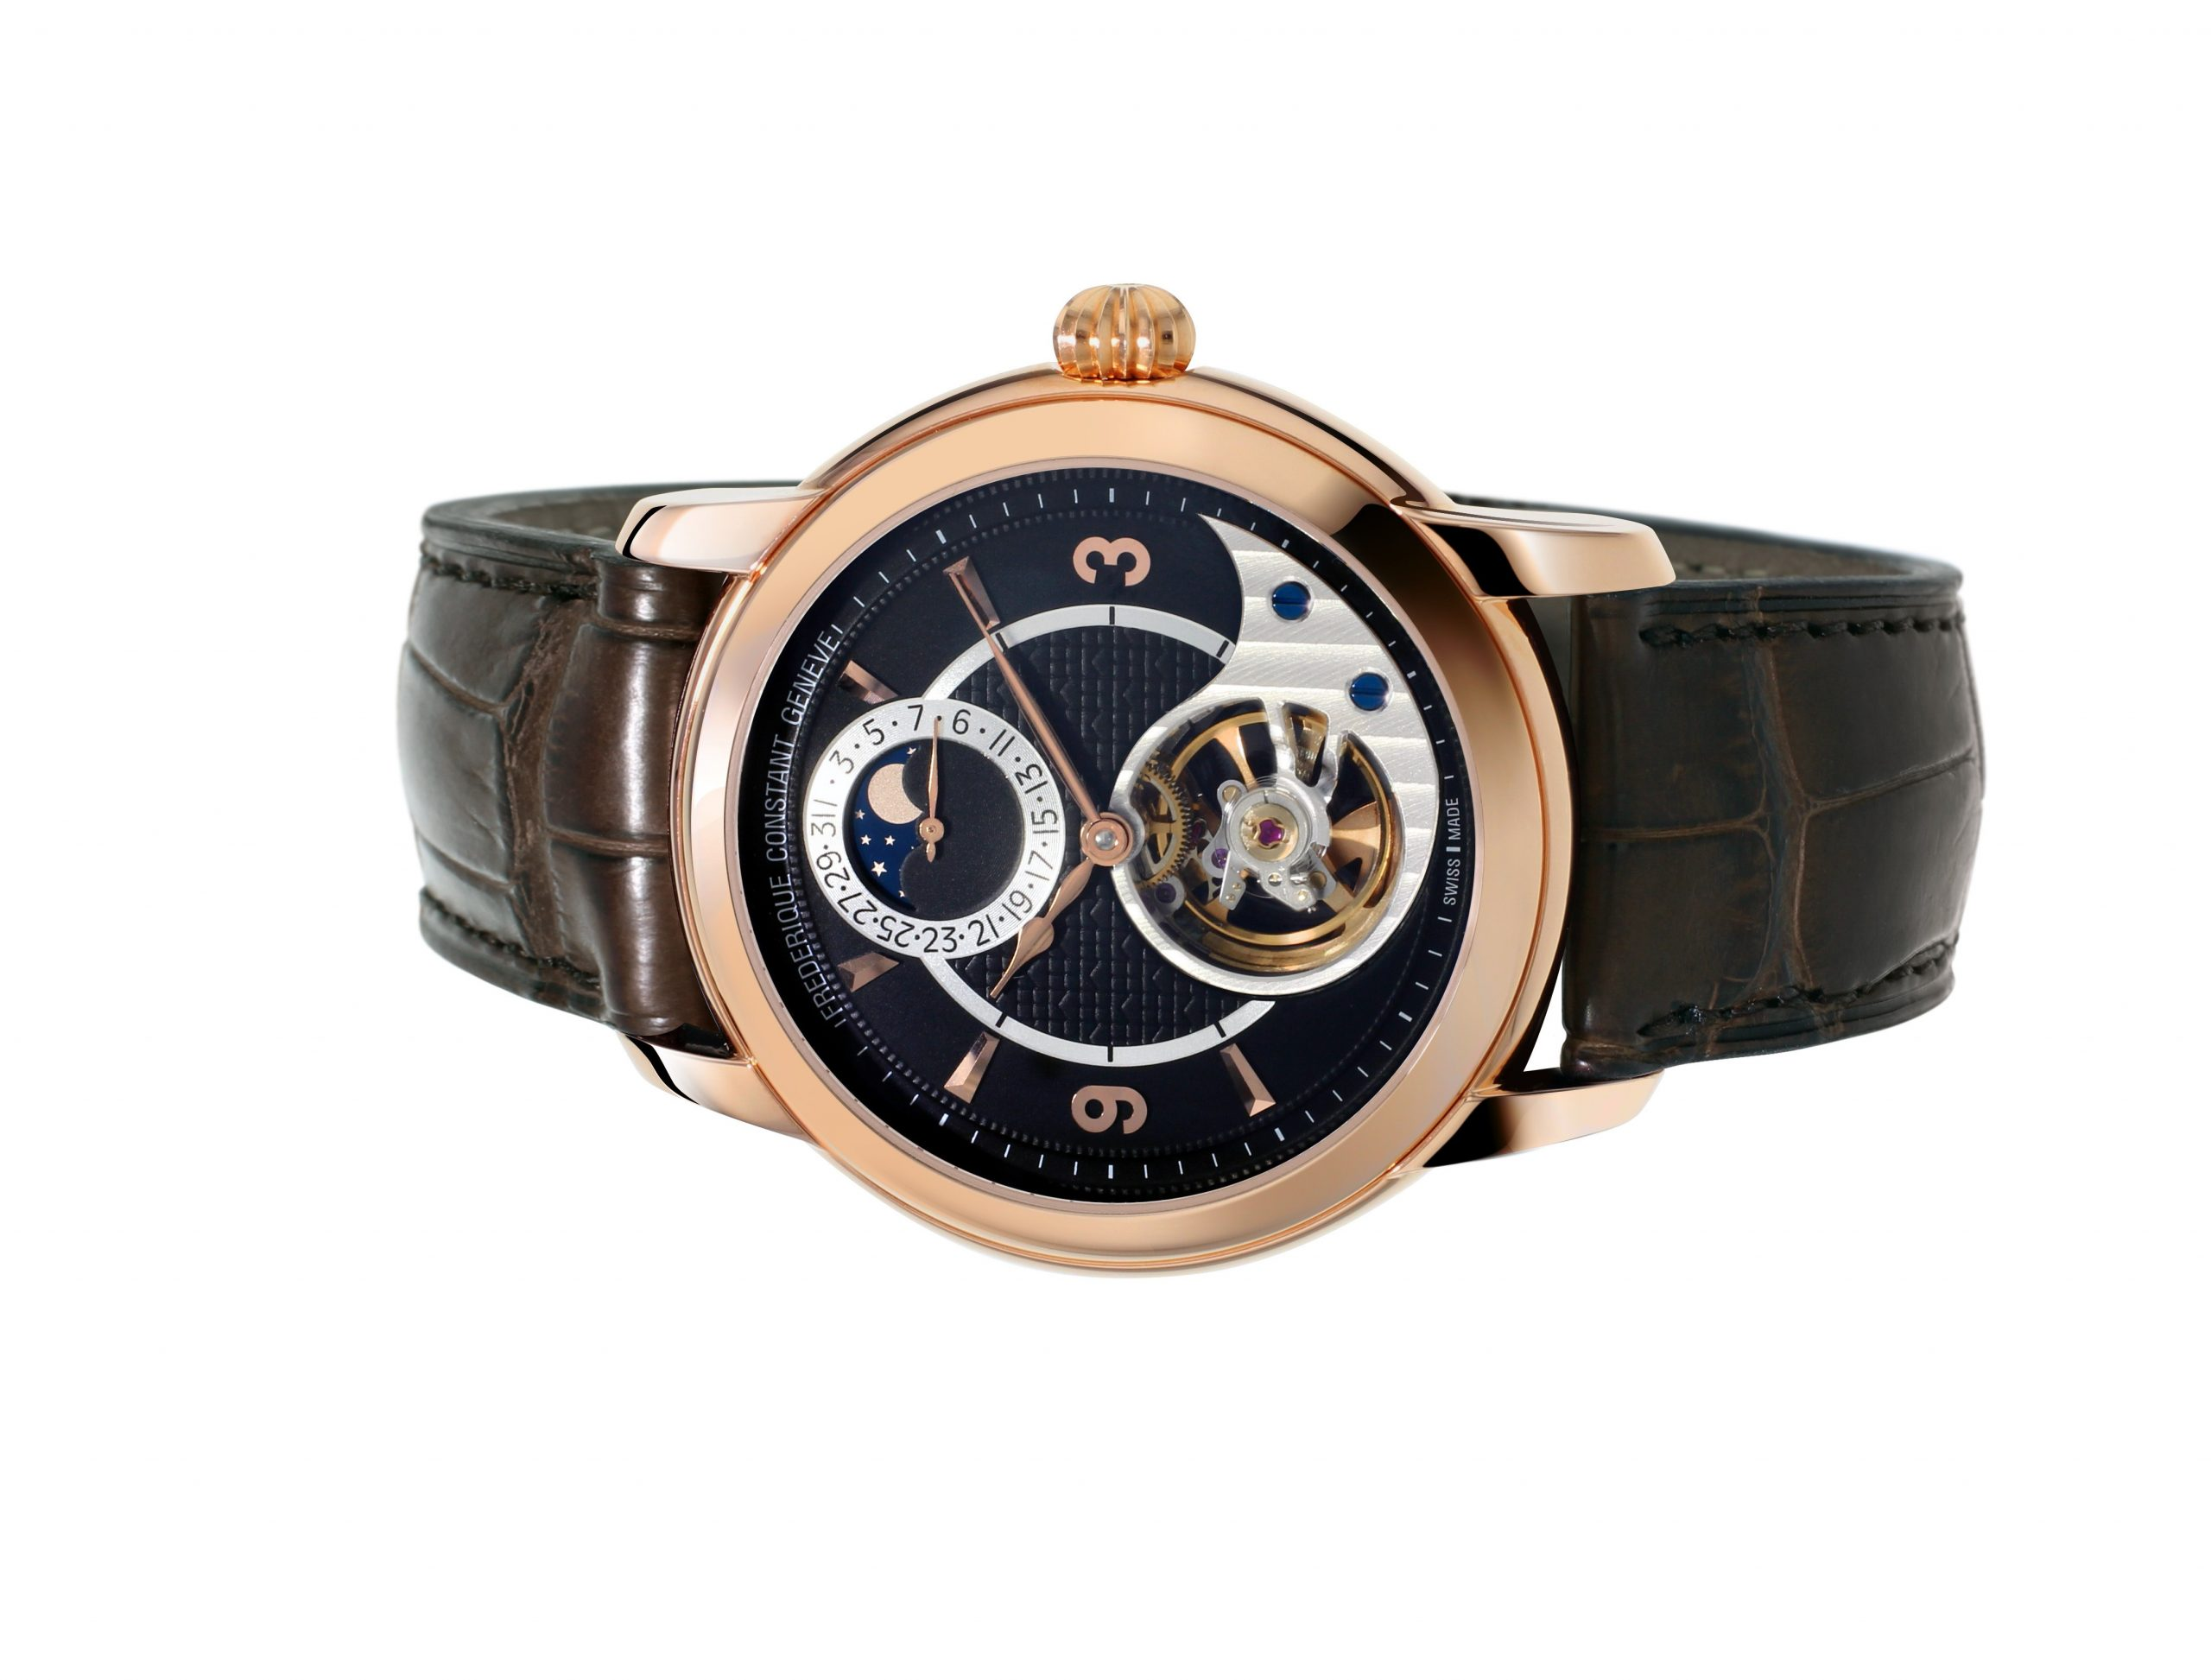 Frederique Constant Heart Beat Manufacture Silicium, ouro rosa